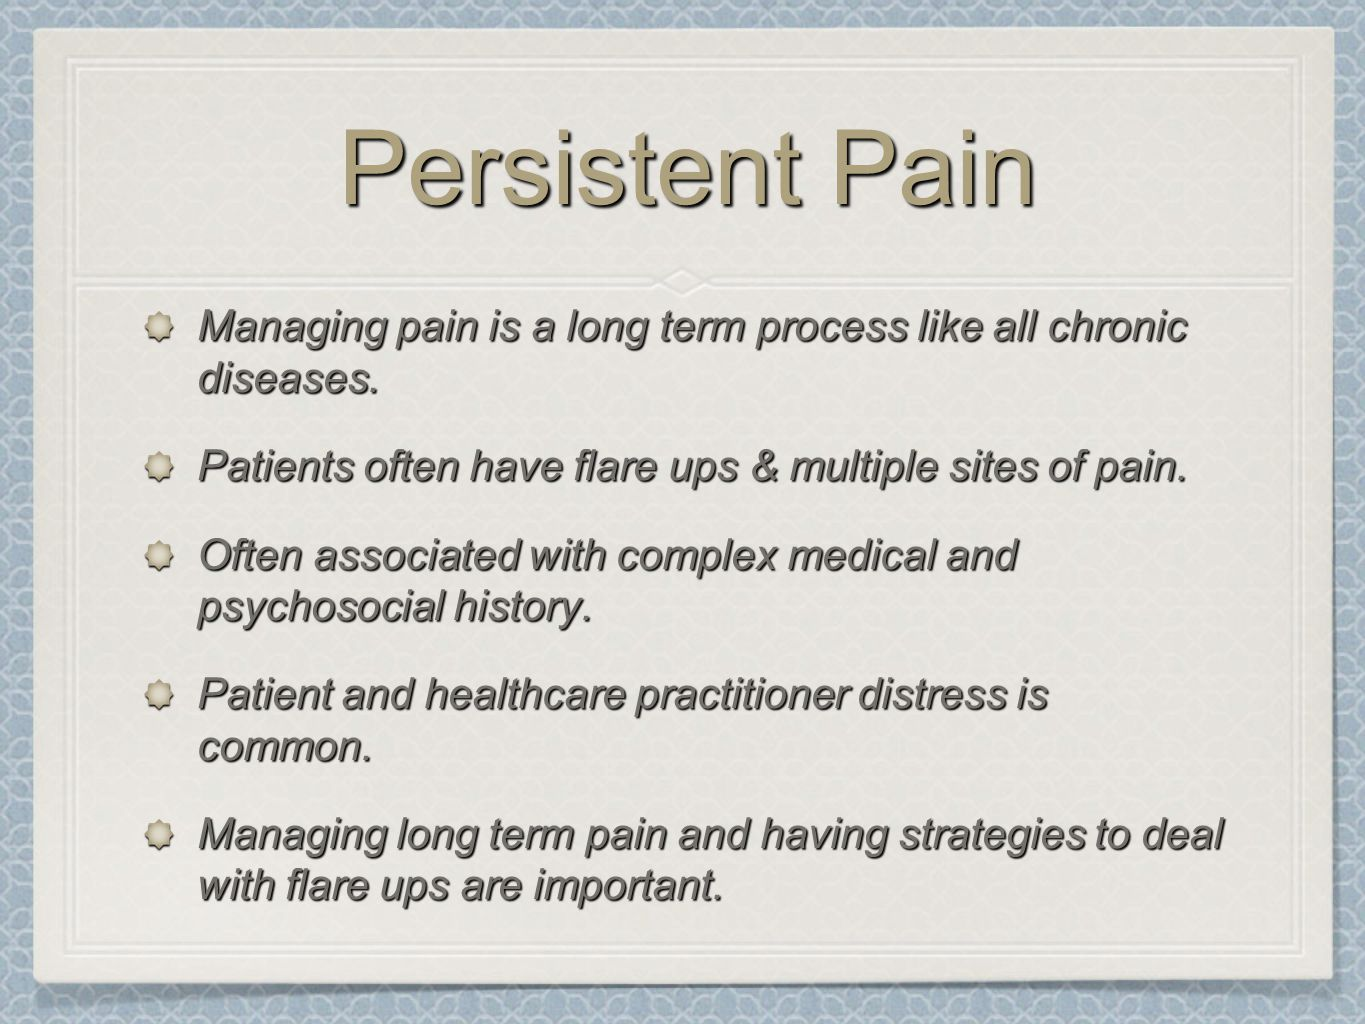 Persistent Pain Managing pain is a long term process like all chronic diseases. Patients often have flare ups & multiple sites of pain.